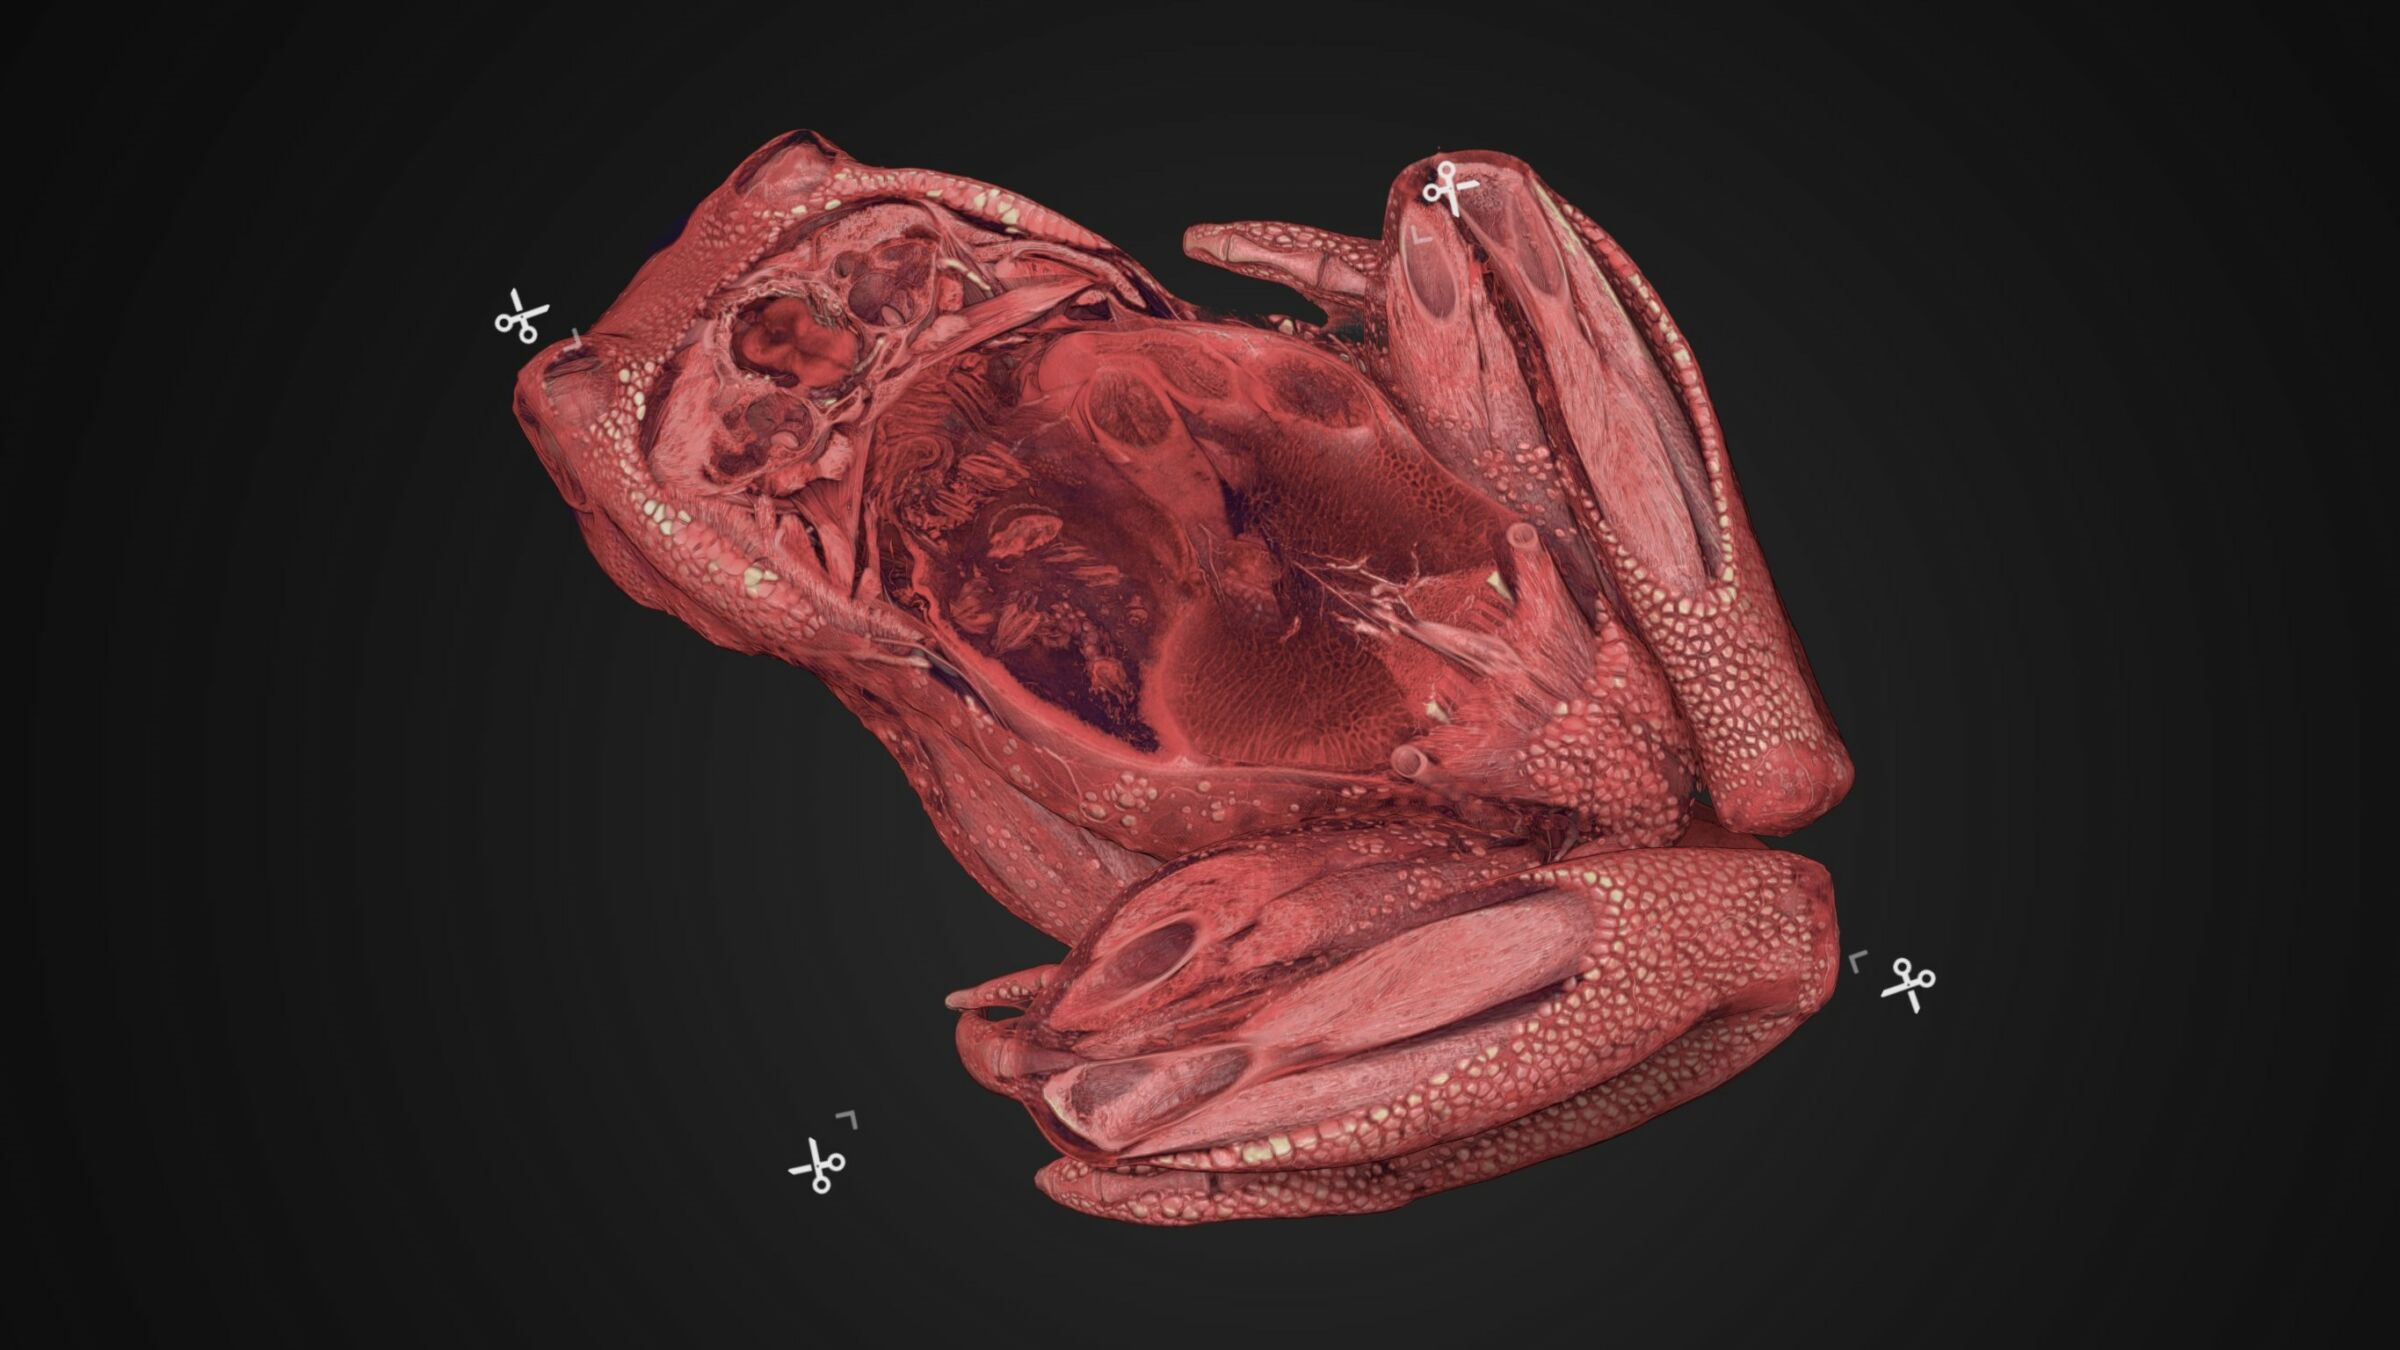 Interactive 3D-visualization of frog exhibited in Inside Explorer used for digital dissection